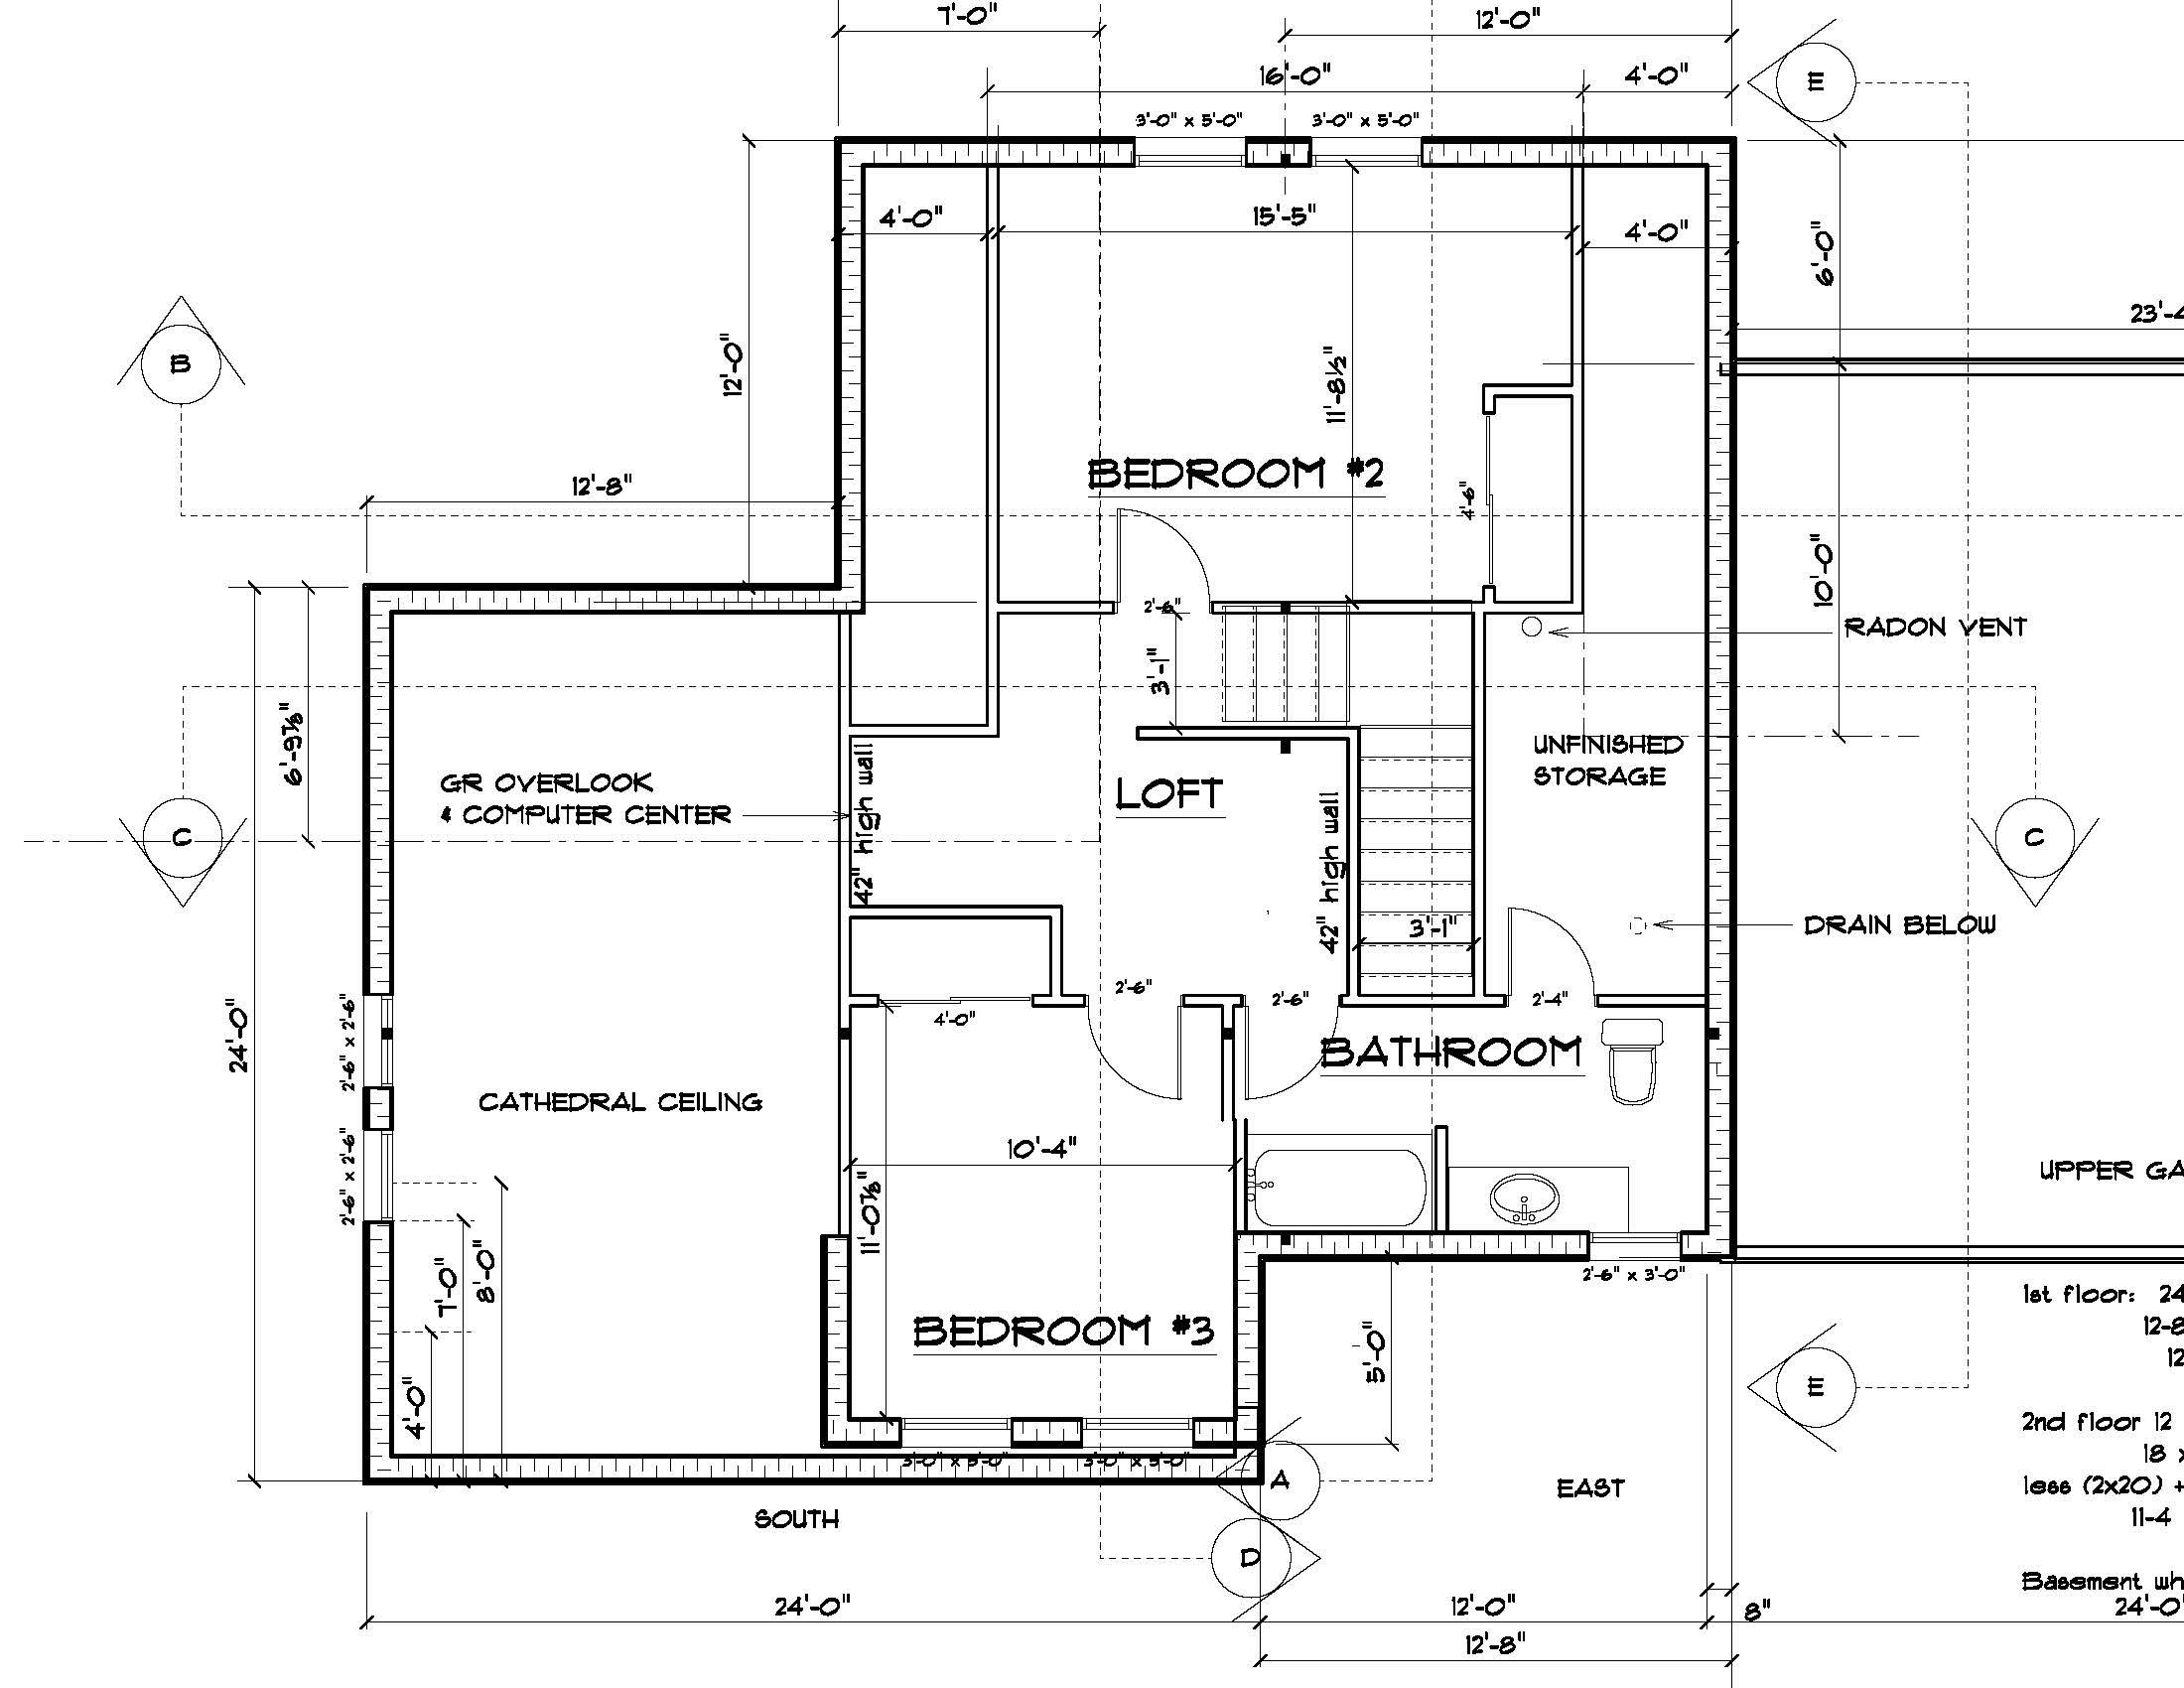 Sample Floor Plan 1